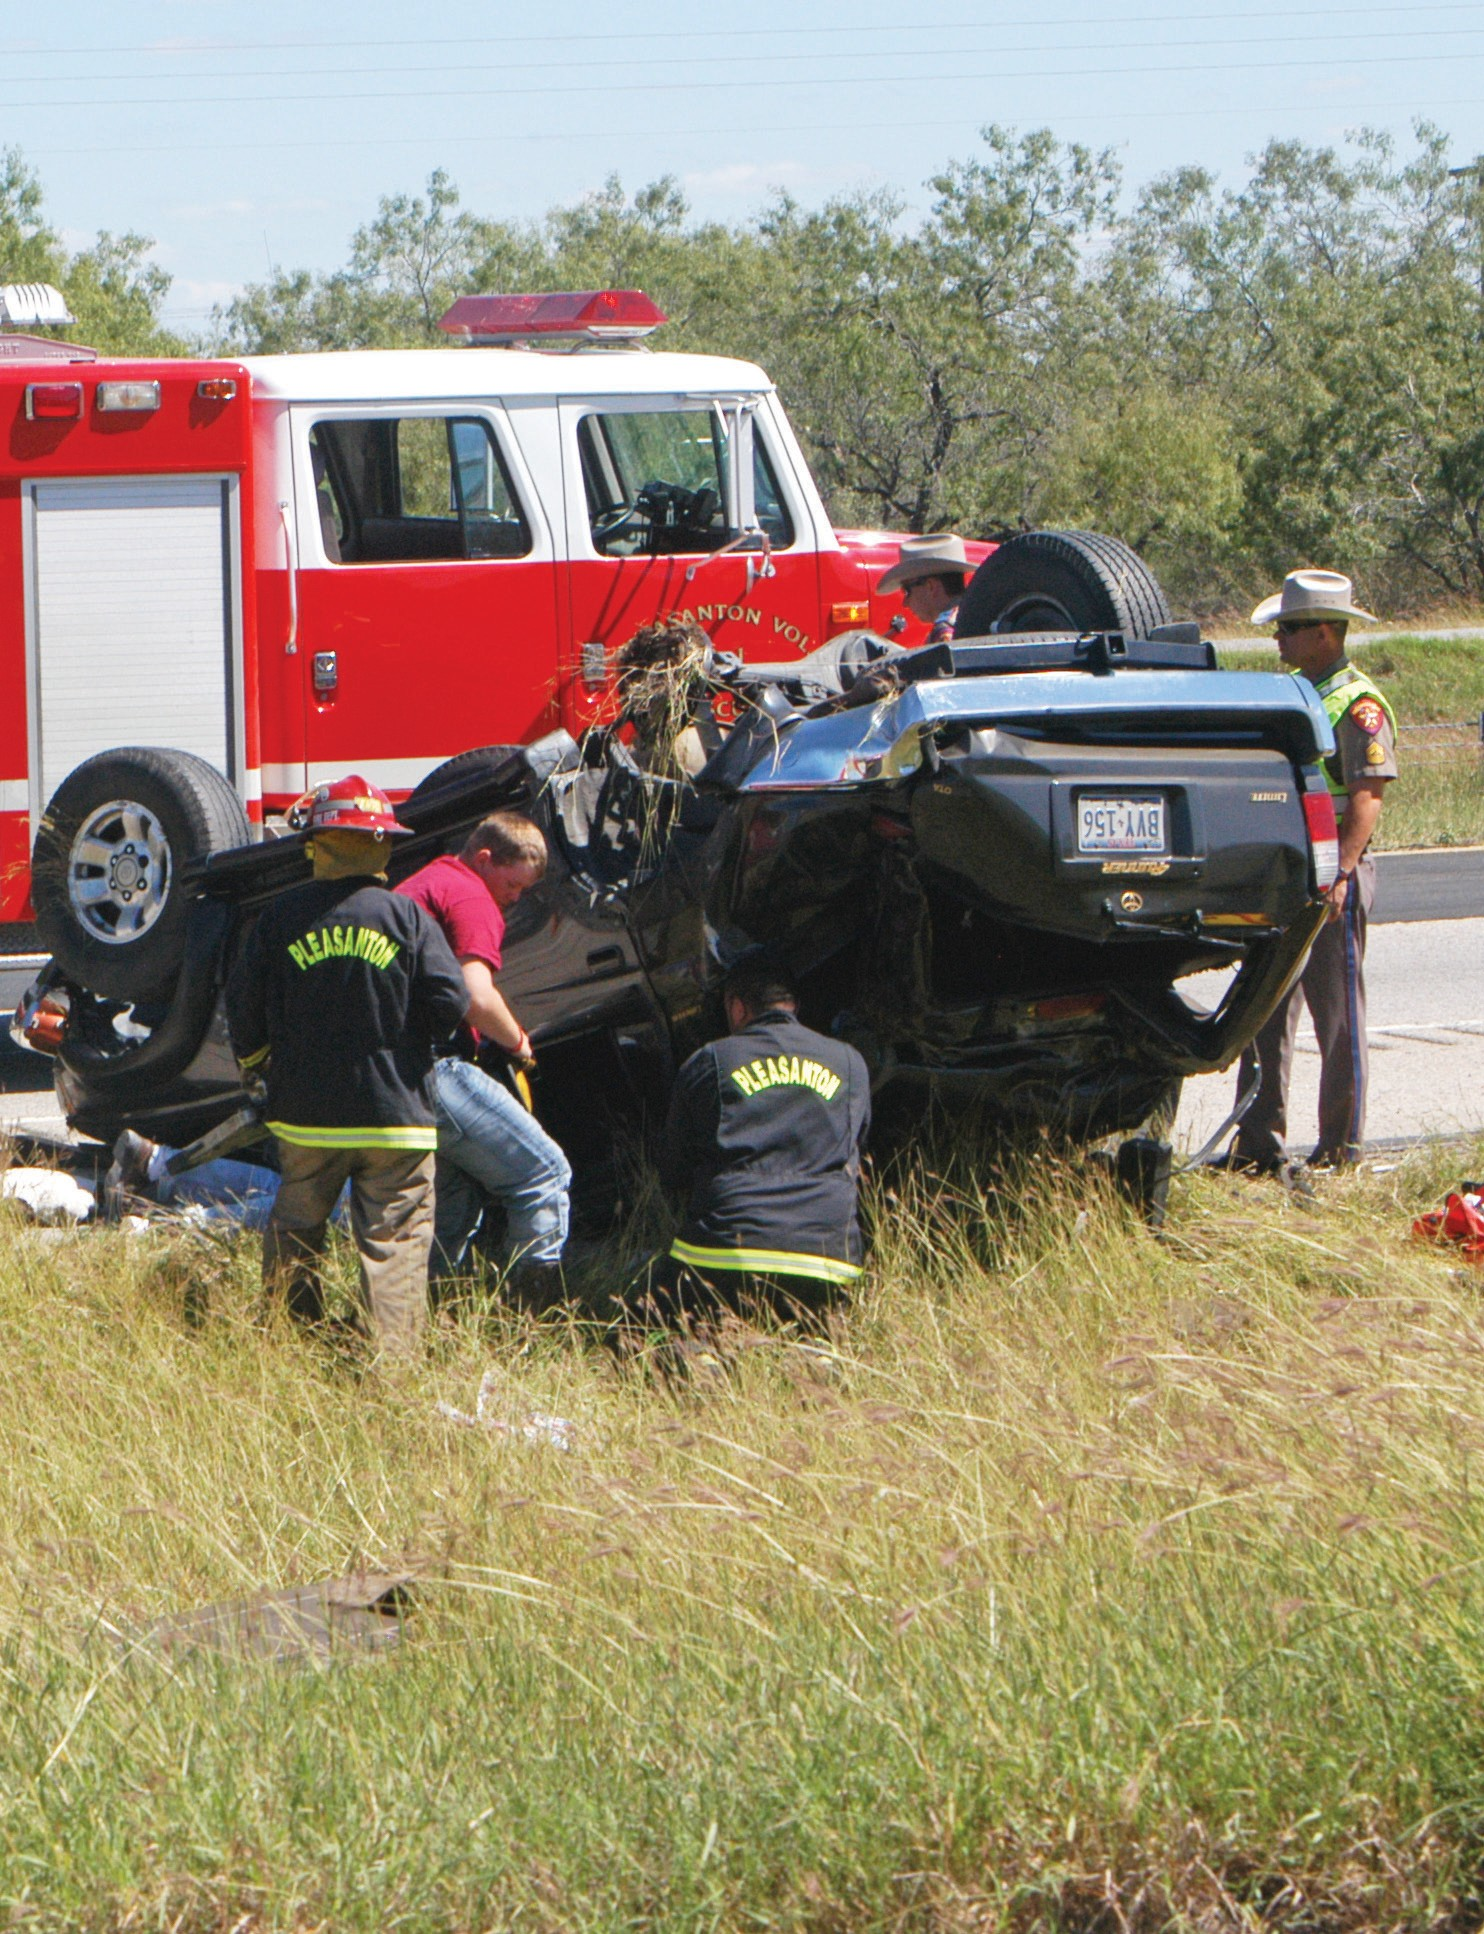 Airlife transported an injured woman after she rolled her Toyota Forerunner on the southbound lane of Interstate 37 around noon on Wednesday. DPS and Pleasanton VFD responded. Responders extracted the female passenger with the Jaws of Life.